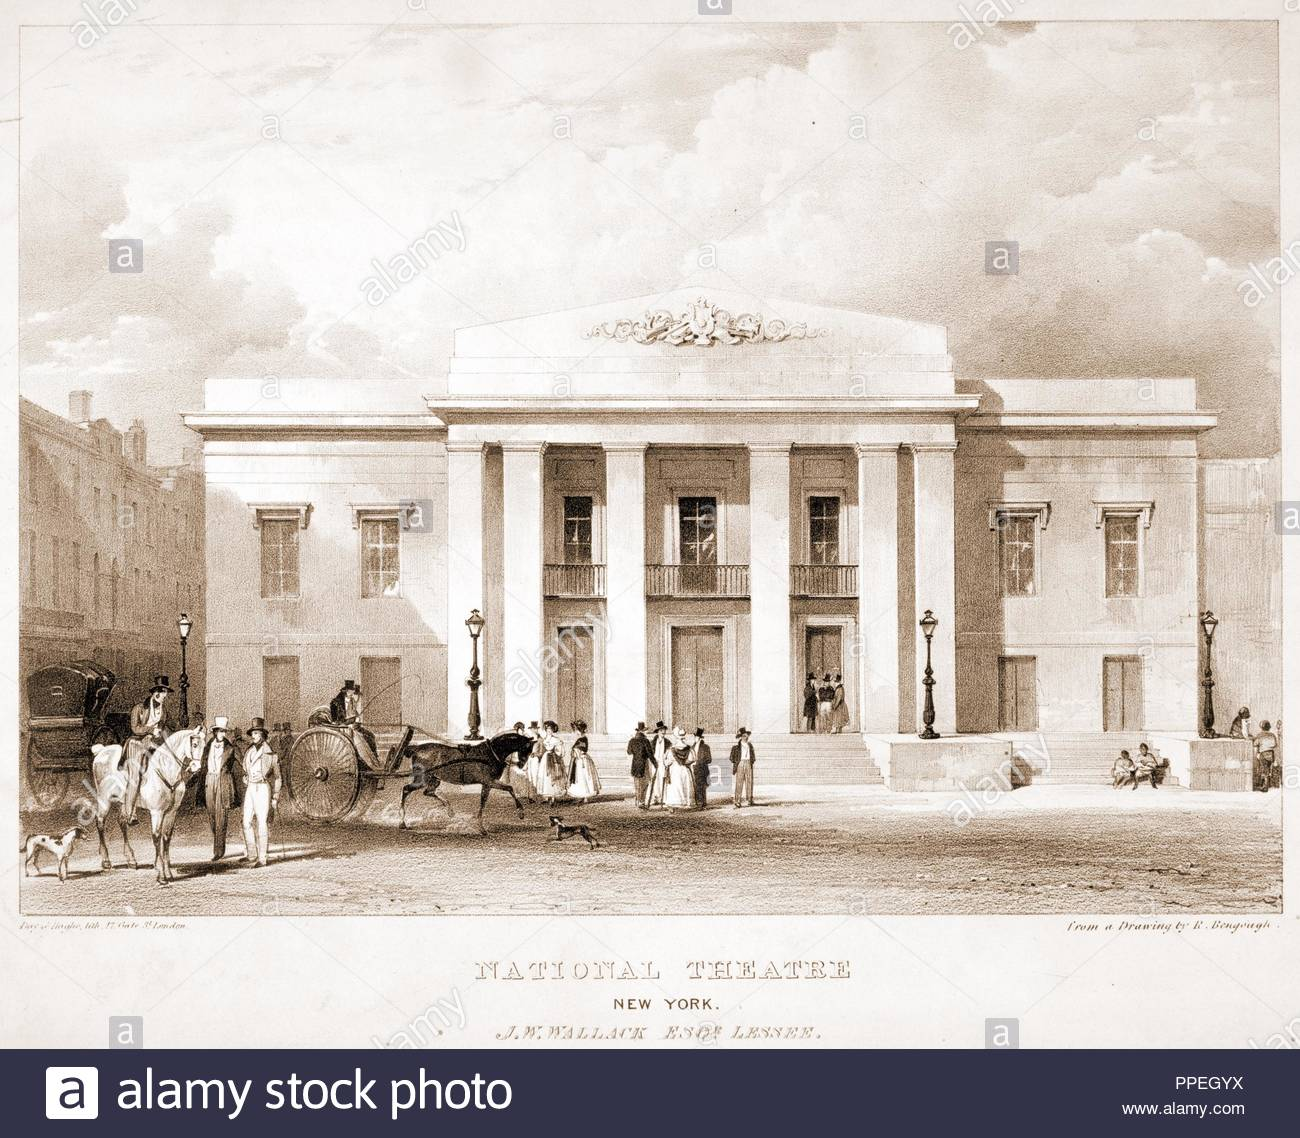 National Theatre, New York. J.W. Wallack, Esqr., lessee / Day & Haghe, lith., 17 Gate St., London ; from a drawing by R. Bengough.; Day & Haghe, lithographer; [between 1840 and 1860]; 1 print. - Stock Image